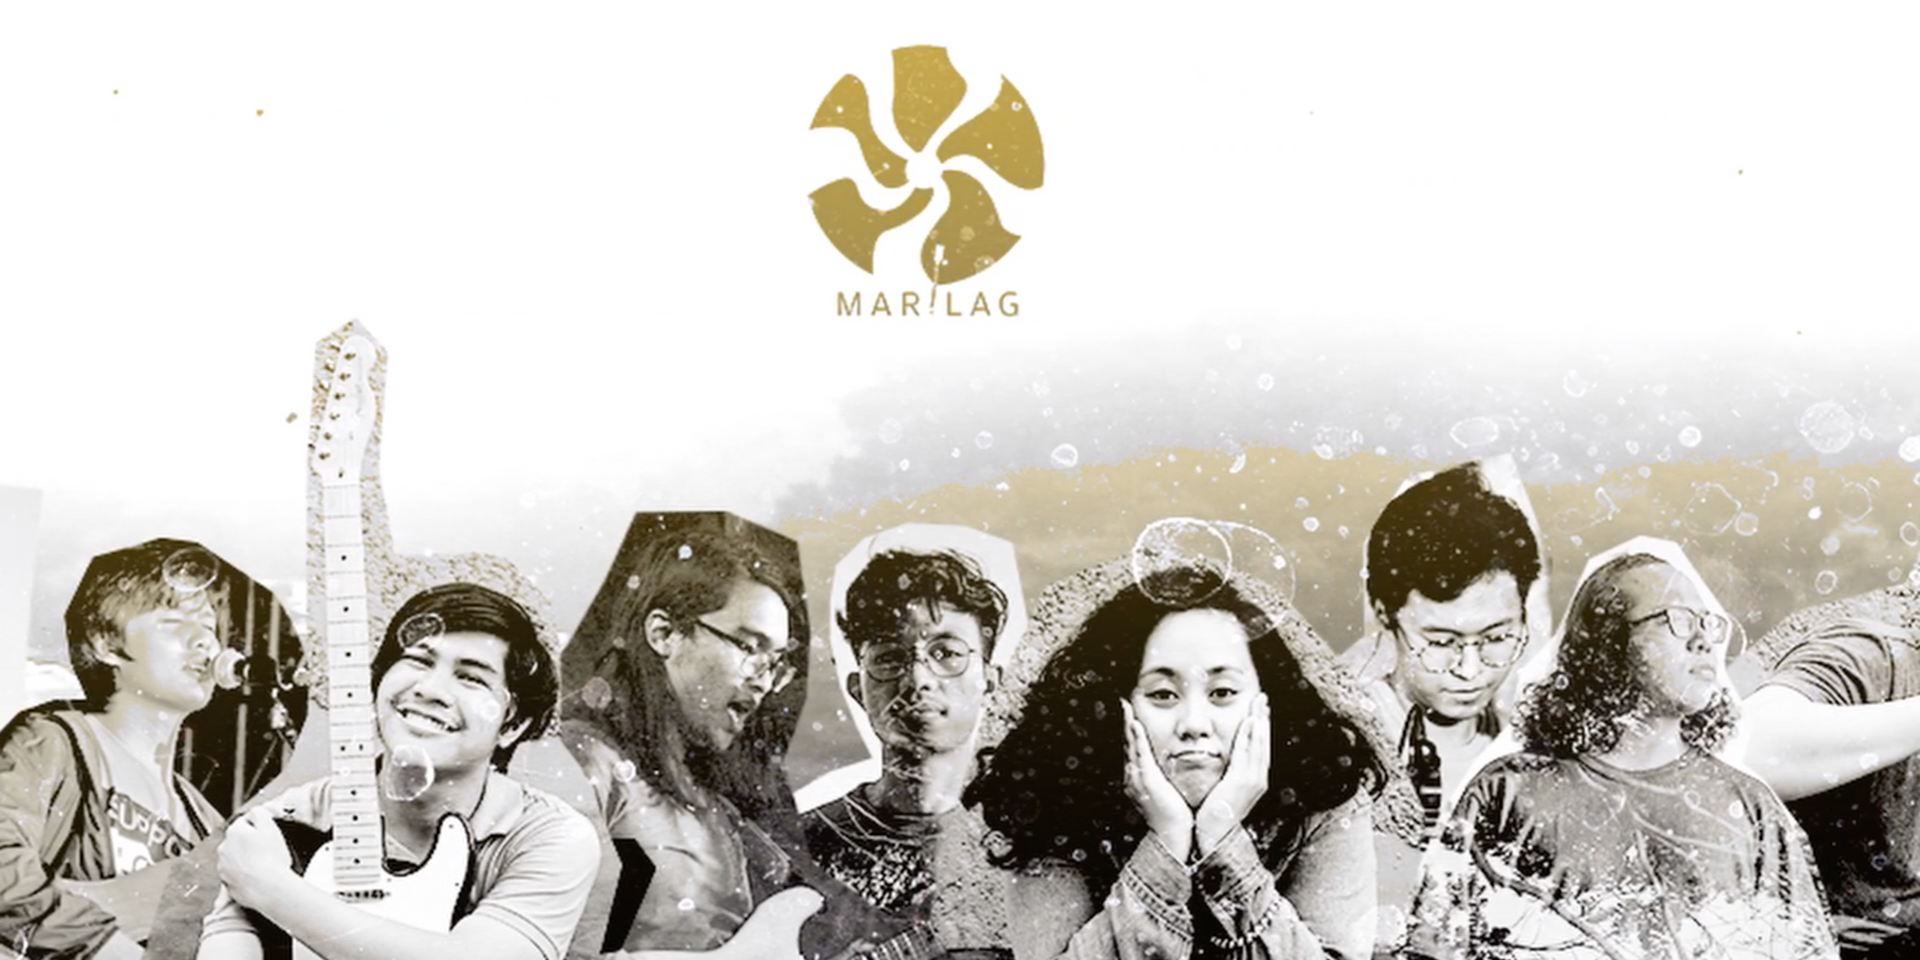 Munimuni, The Ridleys, and Kamara are releasing new tracks every month via Marilag Records